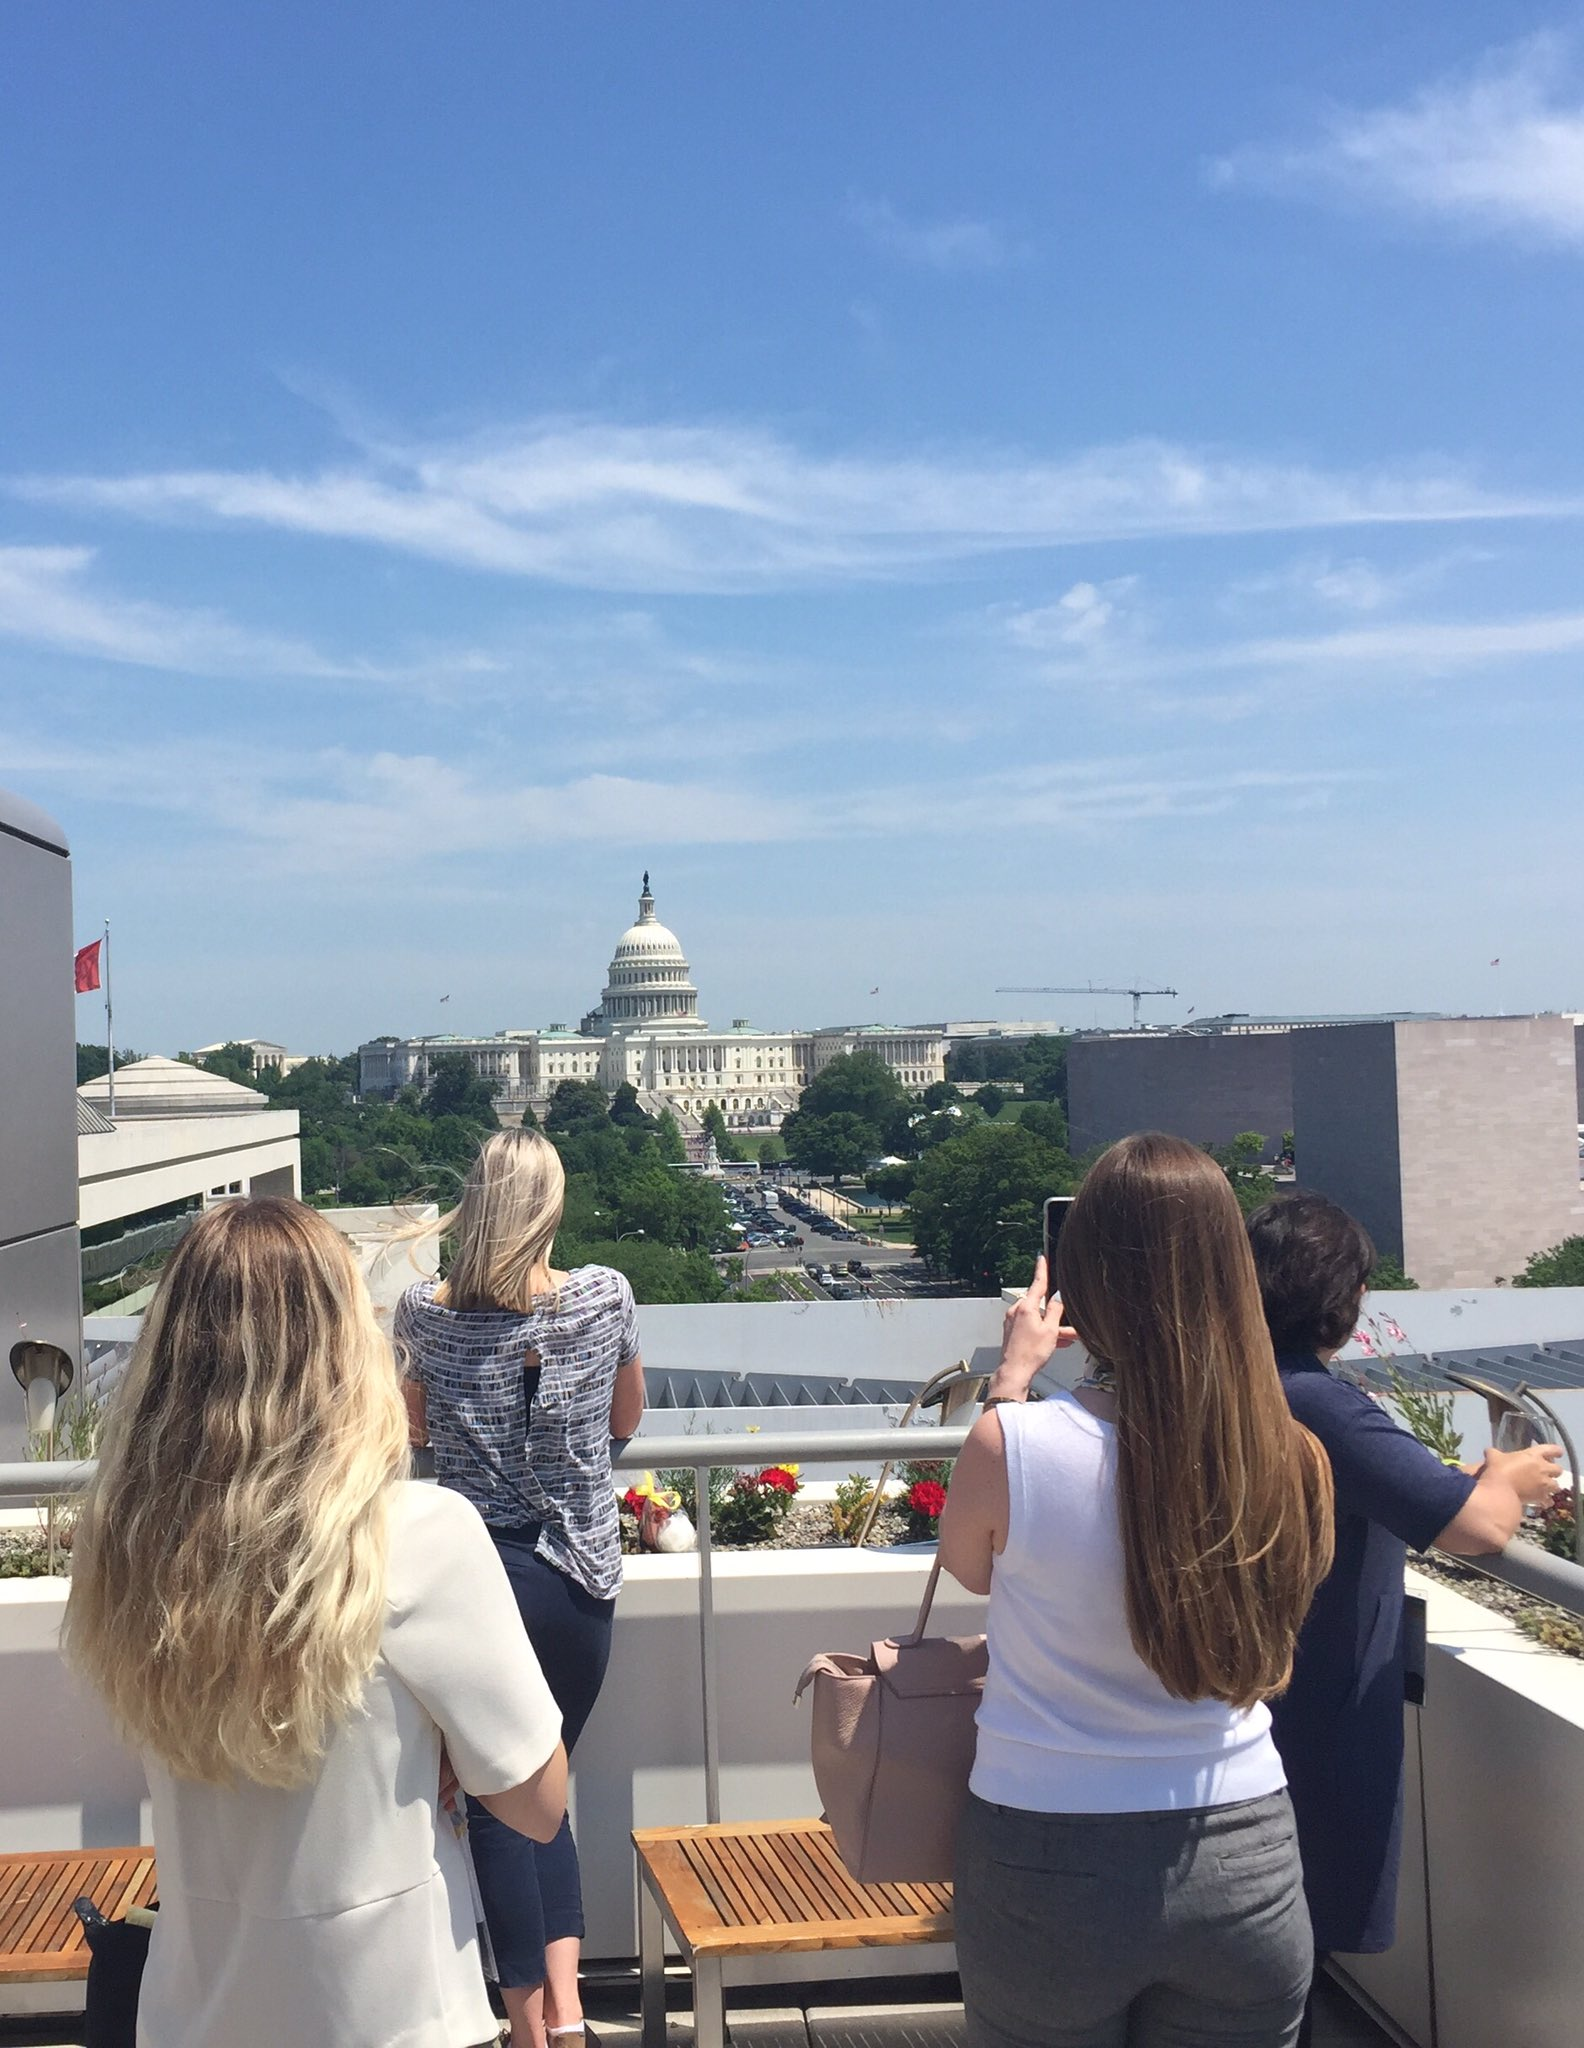 Loving the view from @Newseum at #TMSpark https://t.co/cuFjkwAH0h